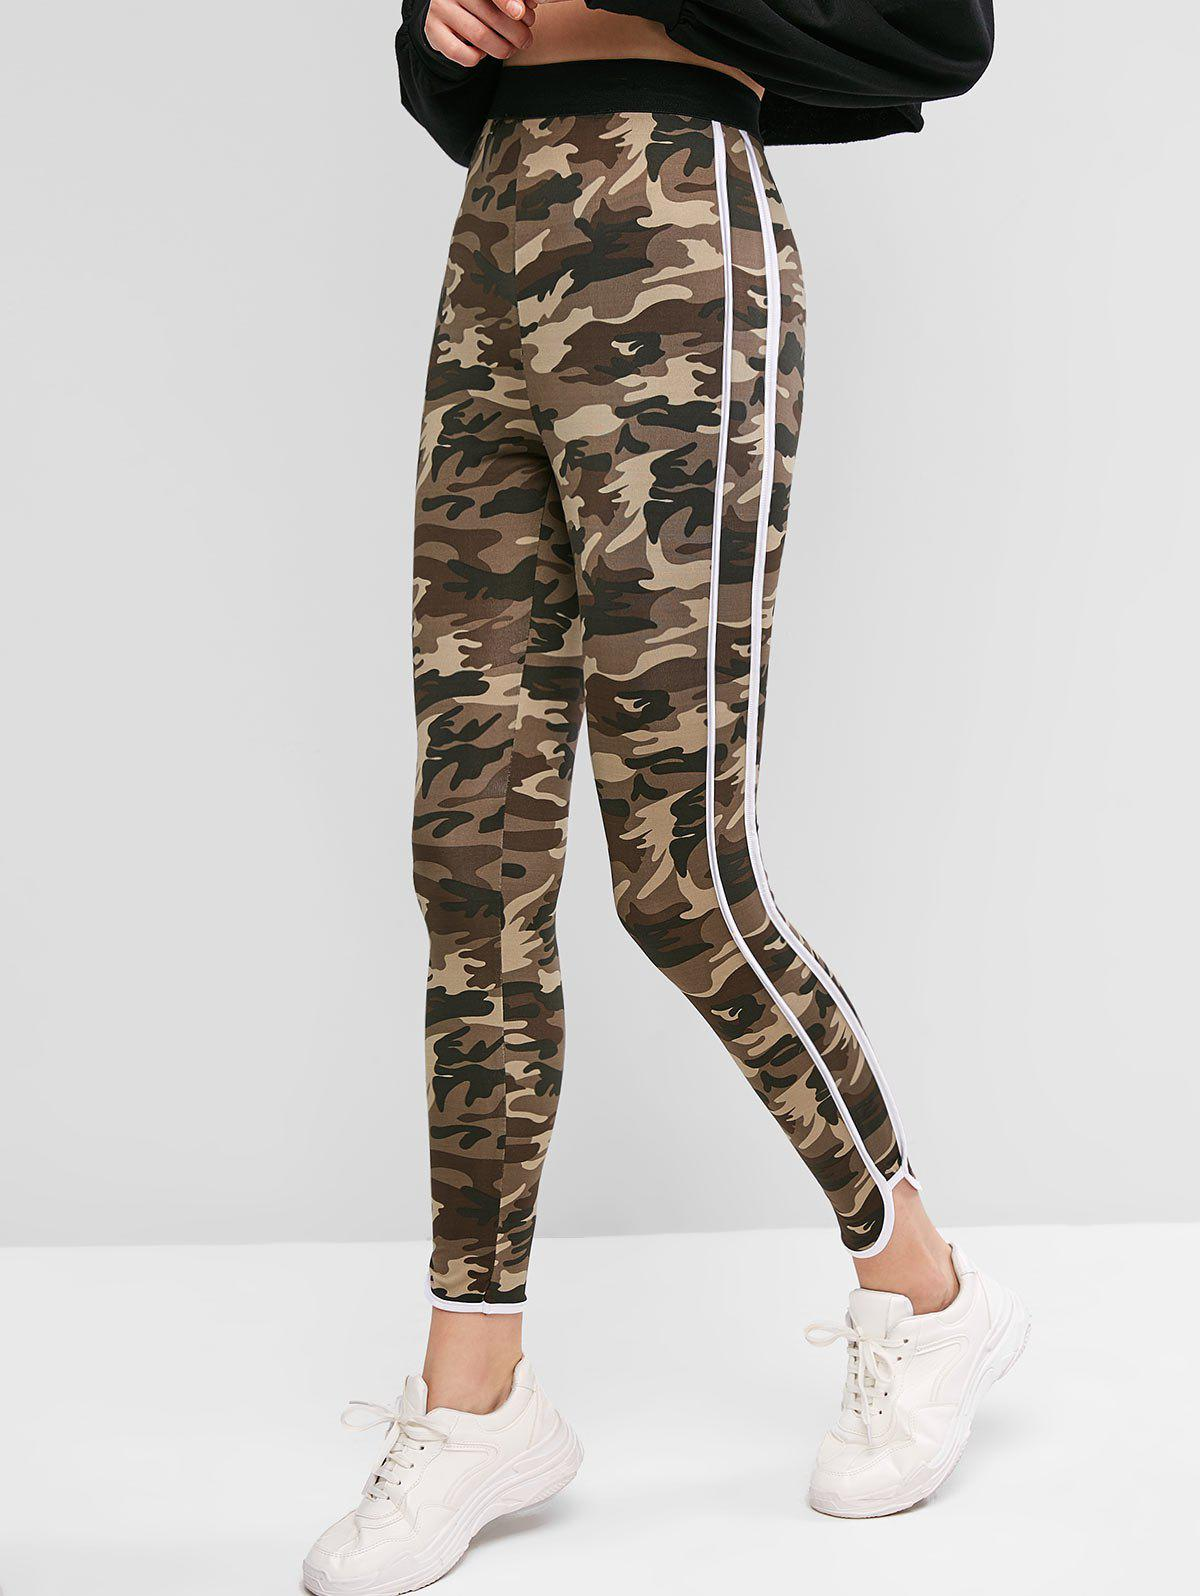 Camouflage Striped Side Fitted Leggings - multicolor XL